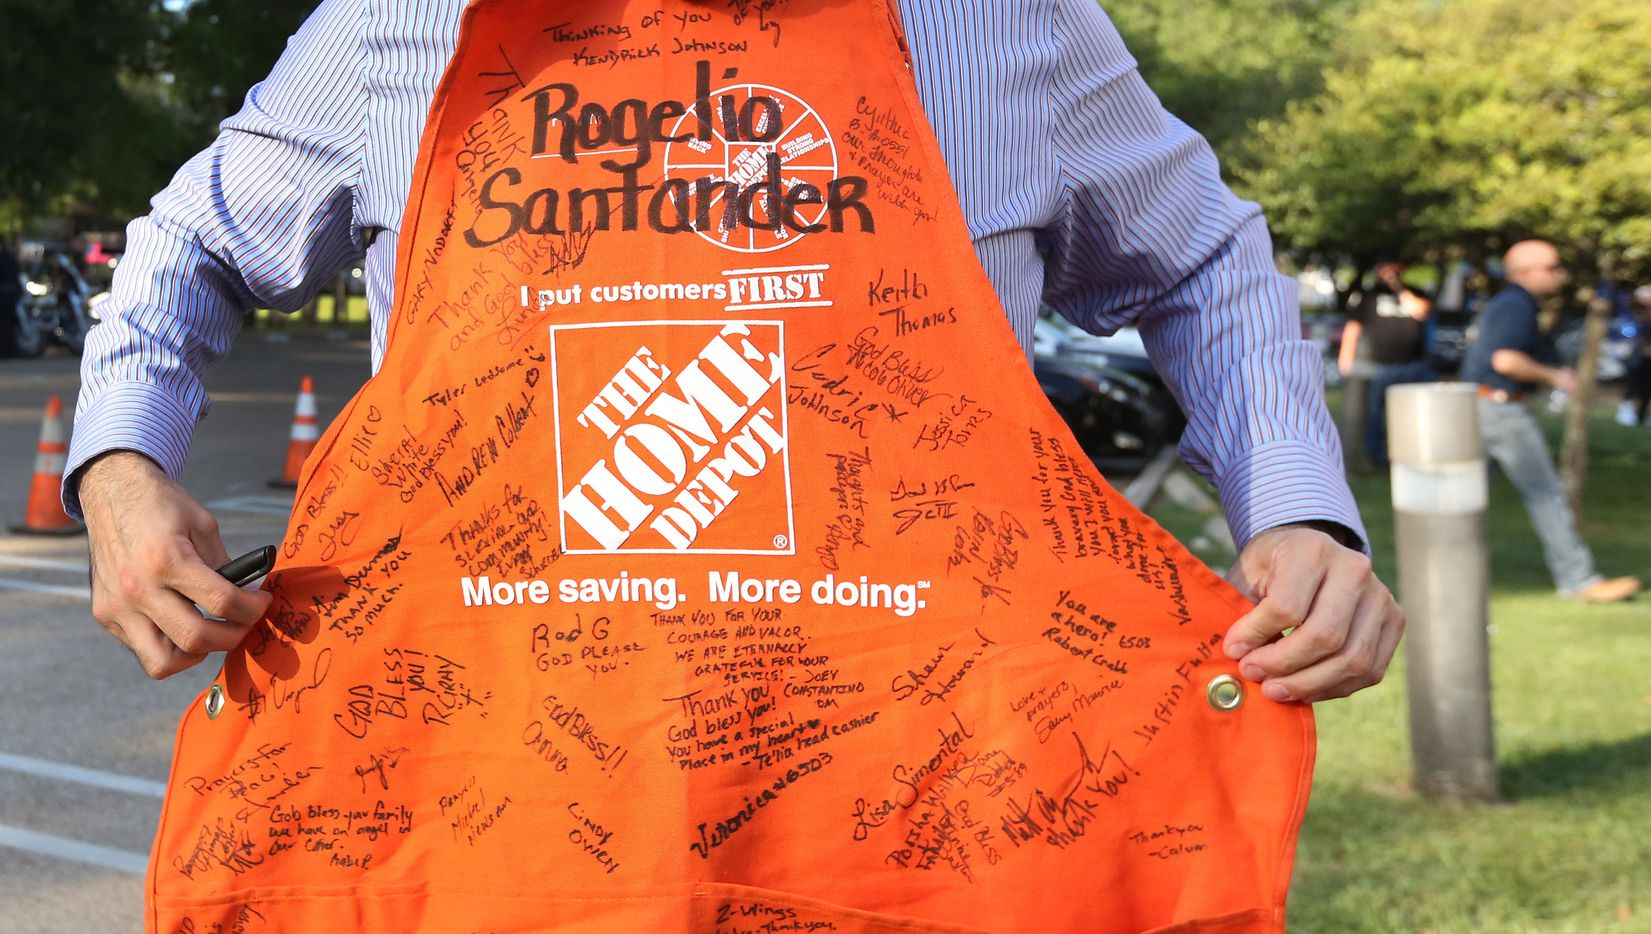 A look at the Home Depot work apron signed by the employees of the store on Forest, to be put on Officer Santander's police car, at a candlelight vigil to support Dallas Police Officer Crystal Almeida, and to honor the memory of Officer Rogelio Santander, Jr., held at the Dallas Police Northeast Division substation on Thursday, April 26, 2018.